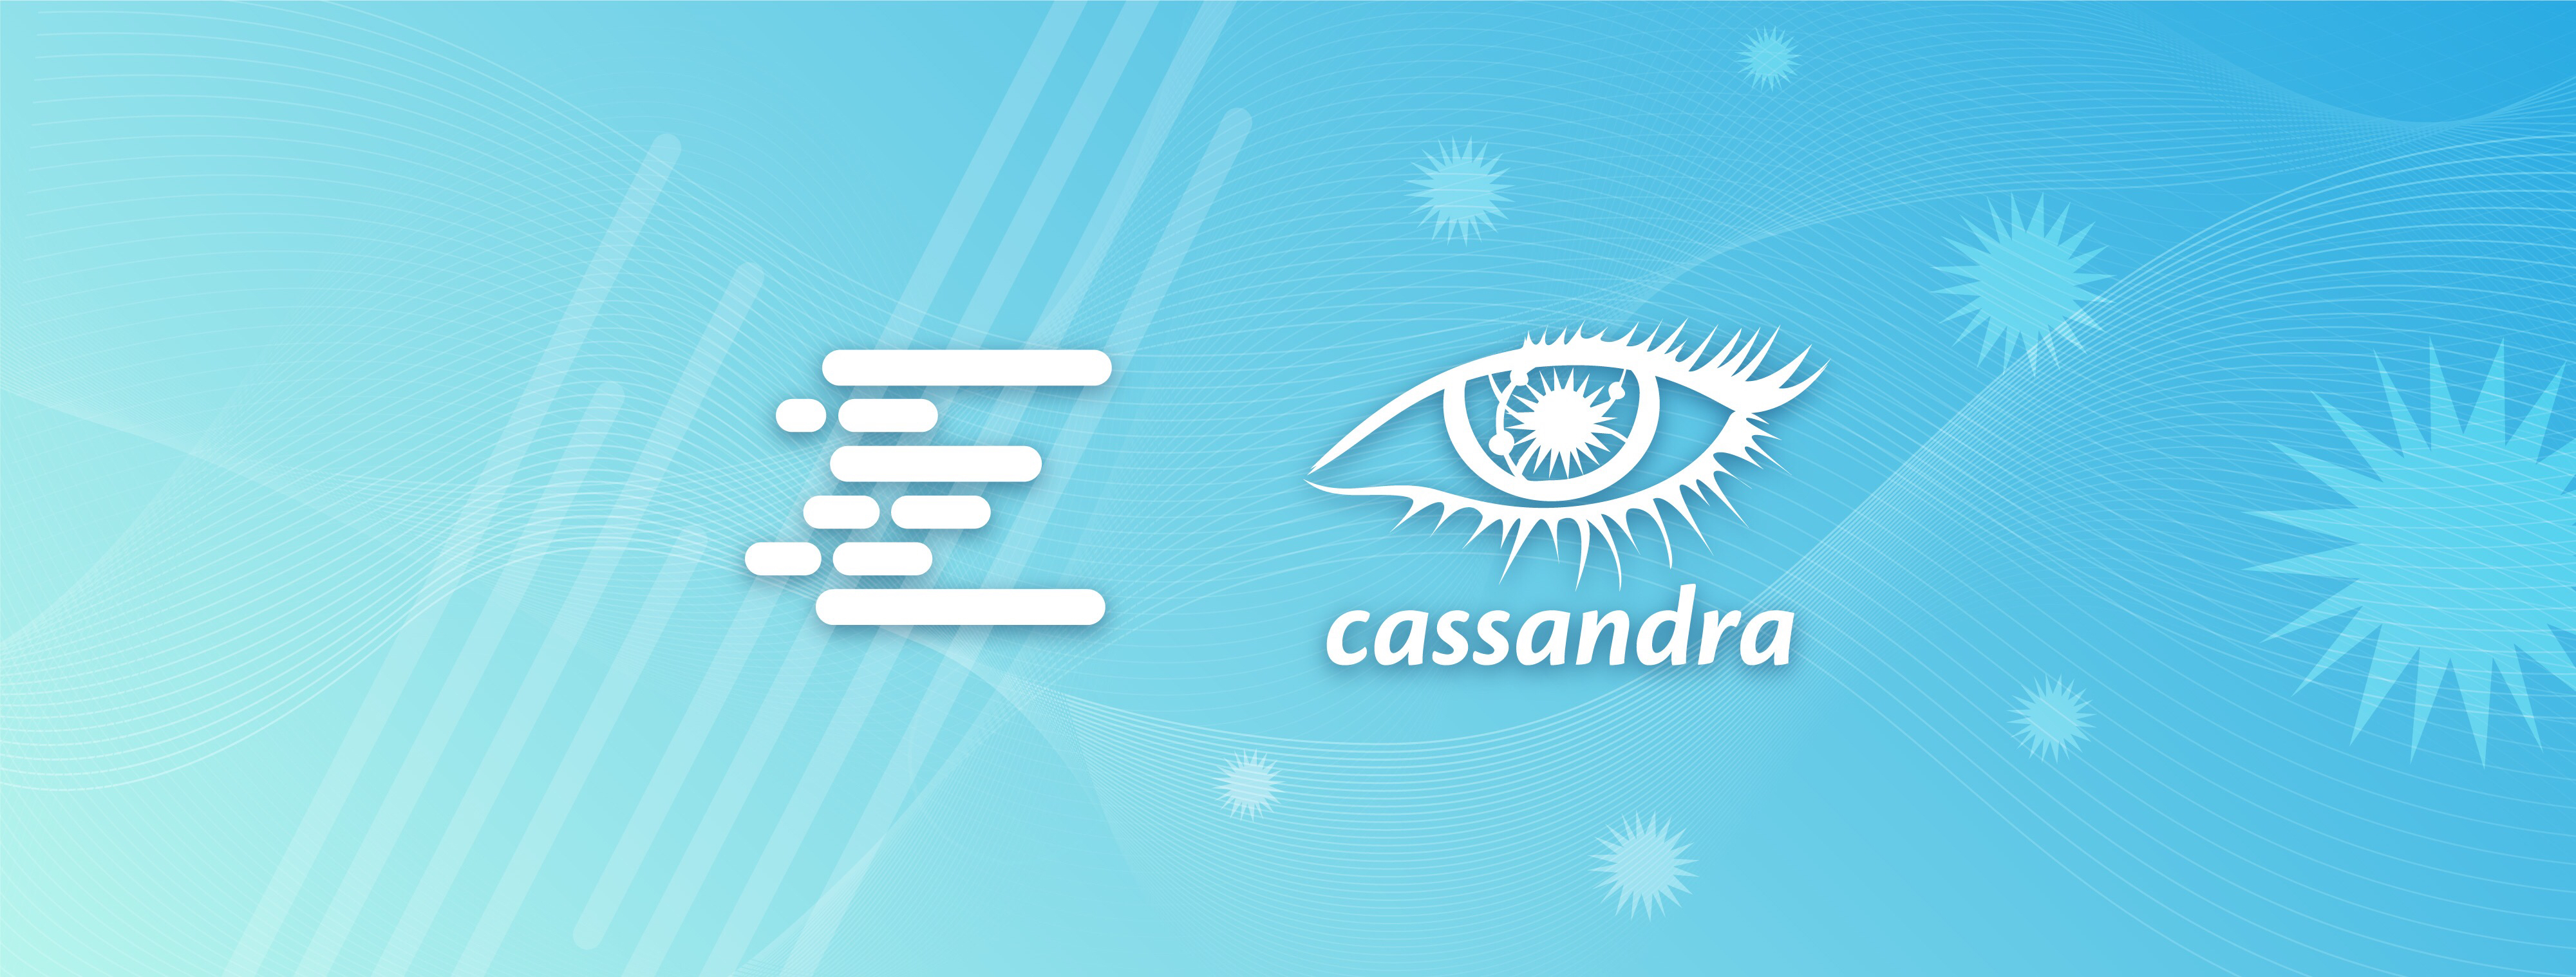 Running Apache Cassandra with Persistent Storage on AWS EC2 Spot With Elastigroup